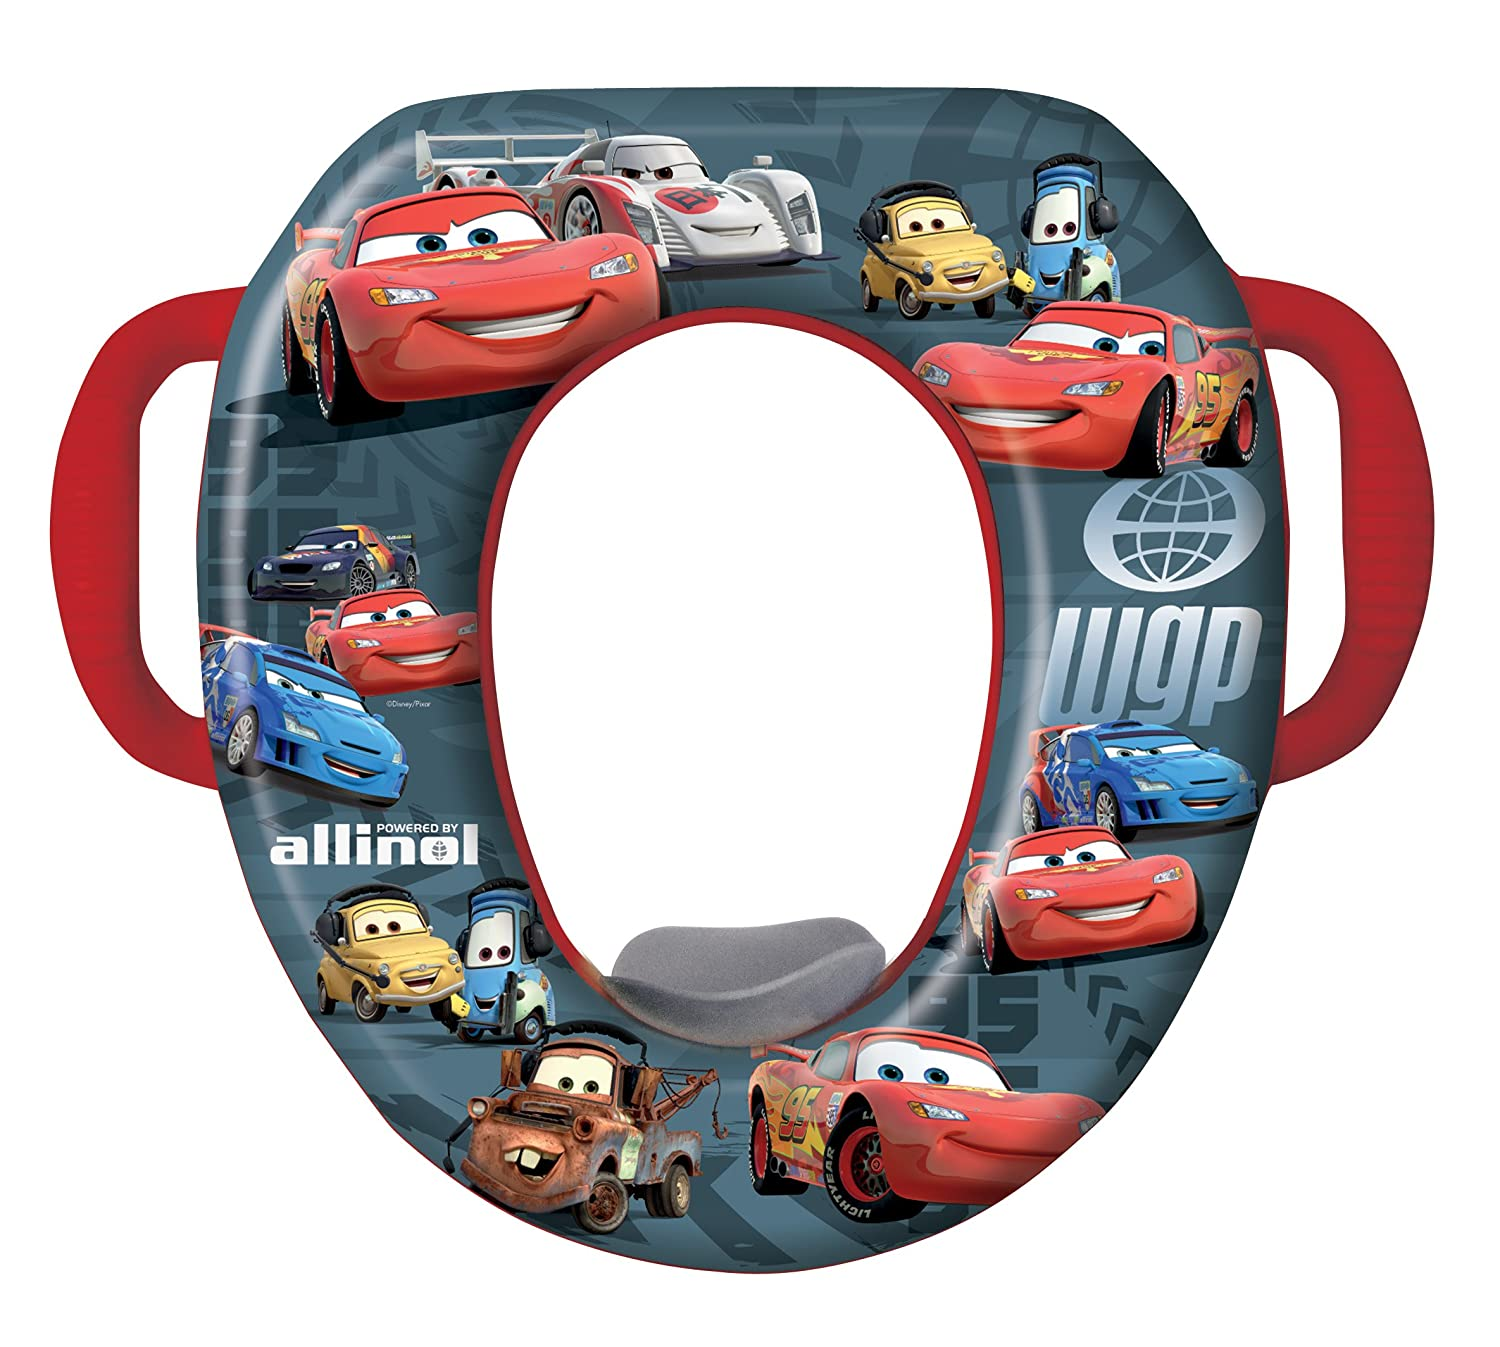 check out 6c51a 8230a Amazon.com  Disney Cars Soft Potty Seat - BlackRed (Discontinued by  Manufacturer)  Toilet Training Seats  Baby